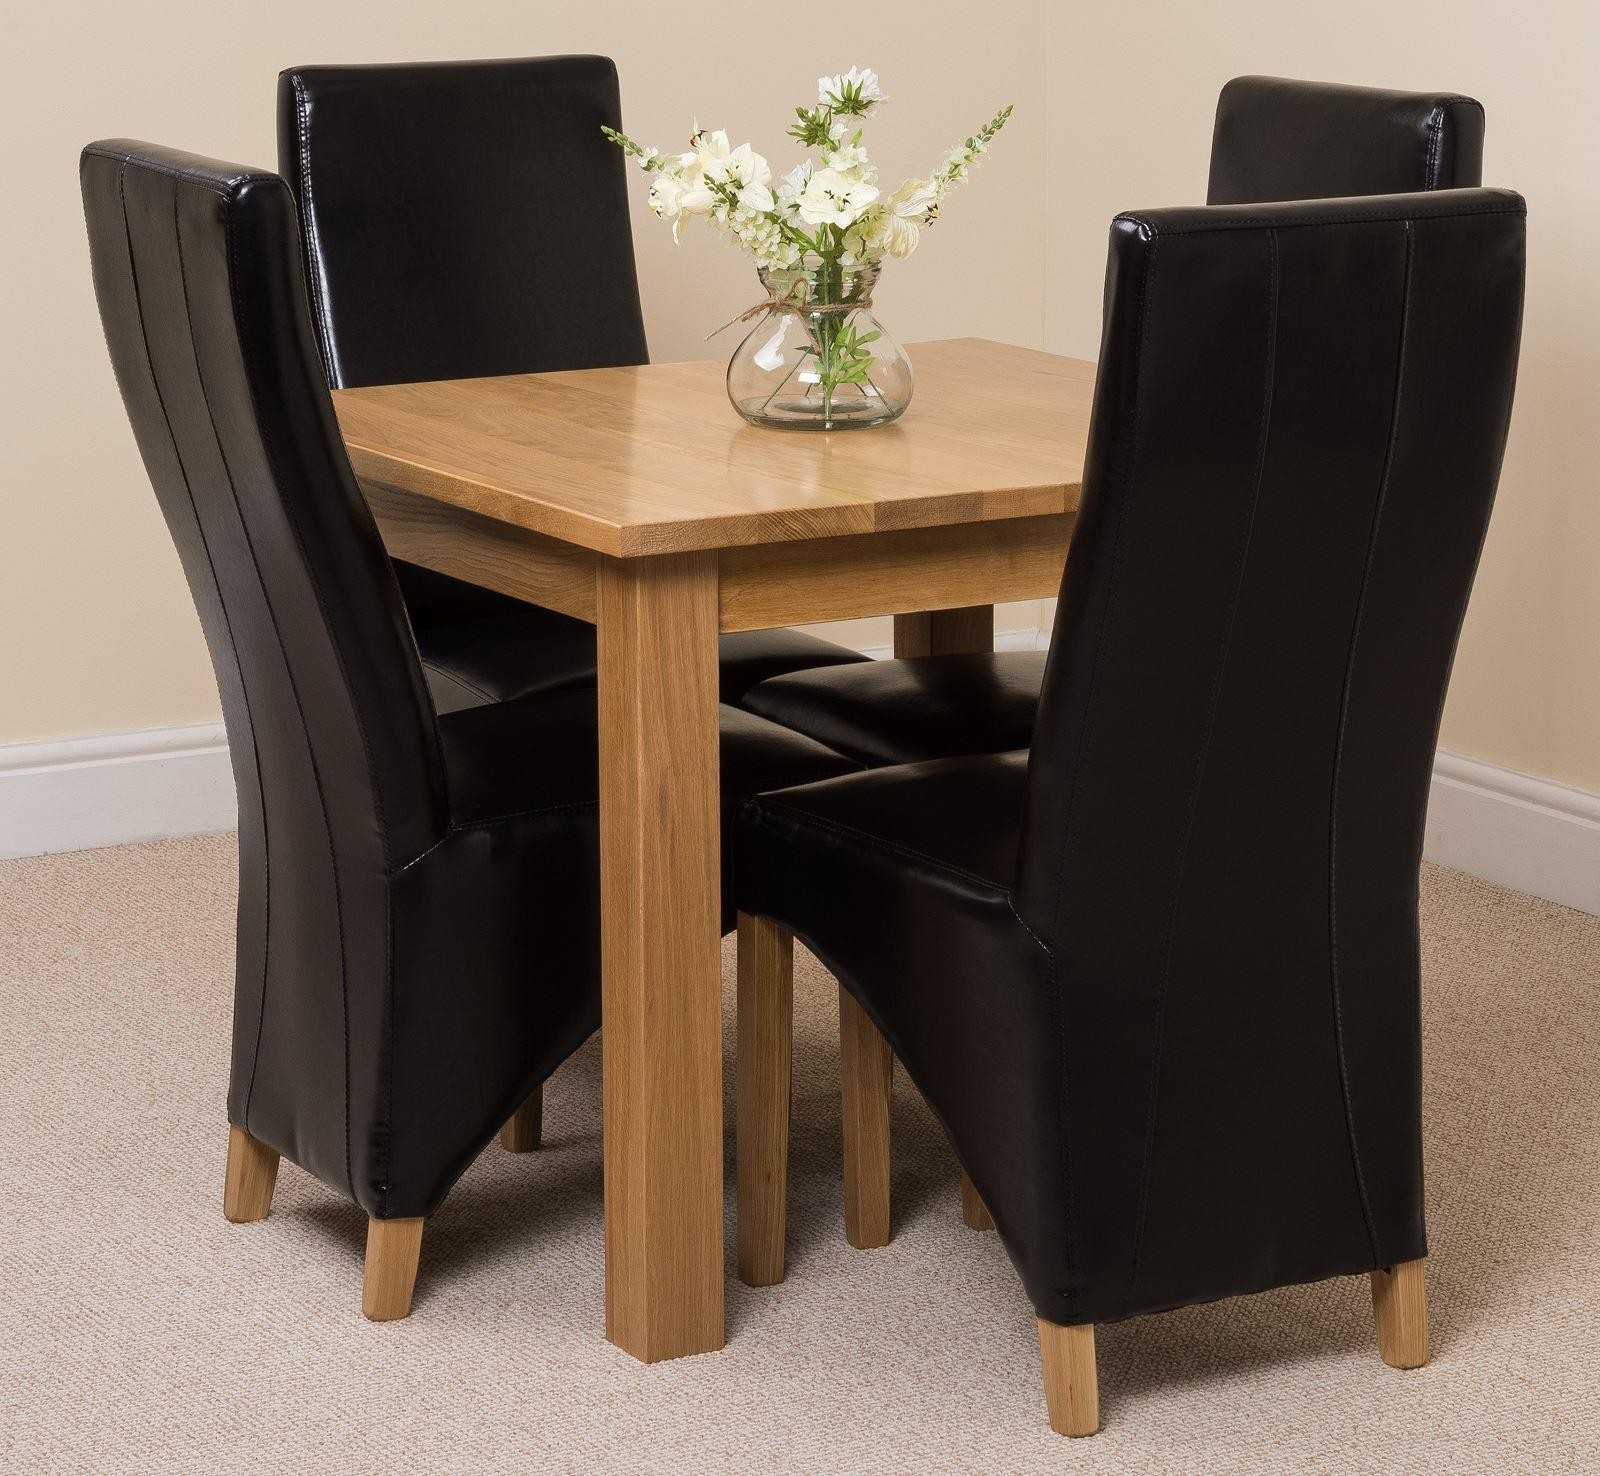 Oslo Solid Oak Dining Table with 4 Lola Dining Chairs [Black Leather]